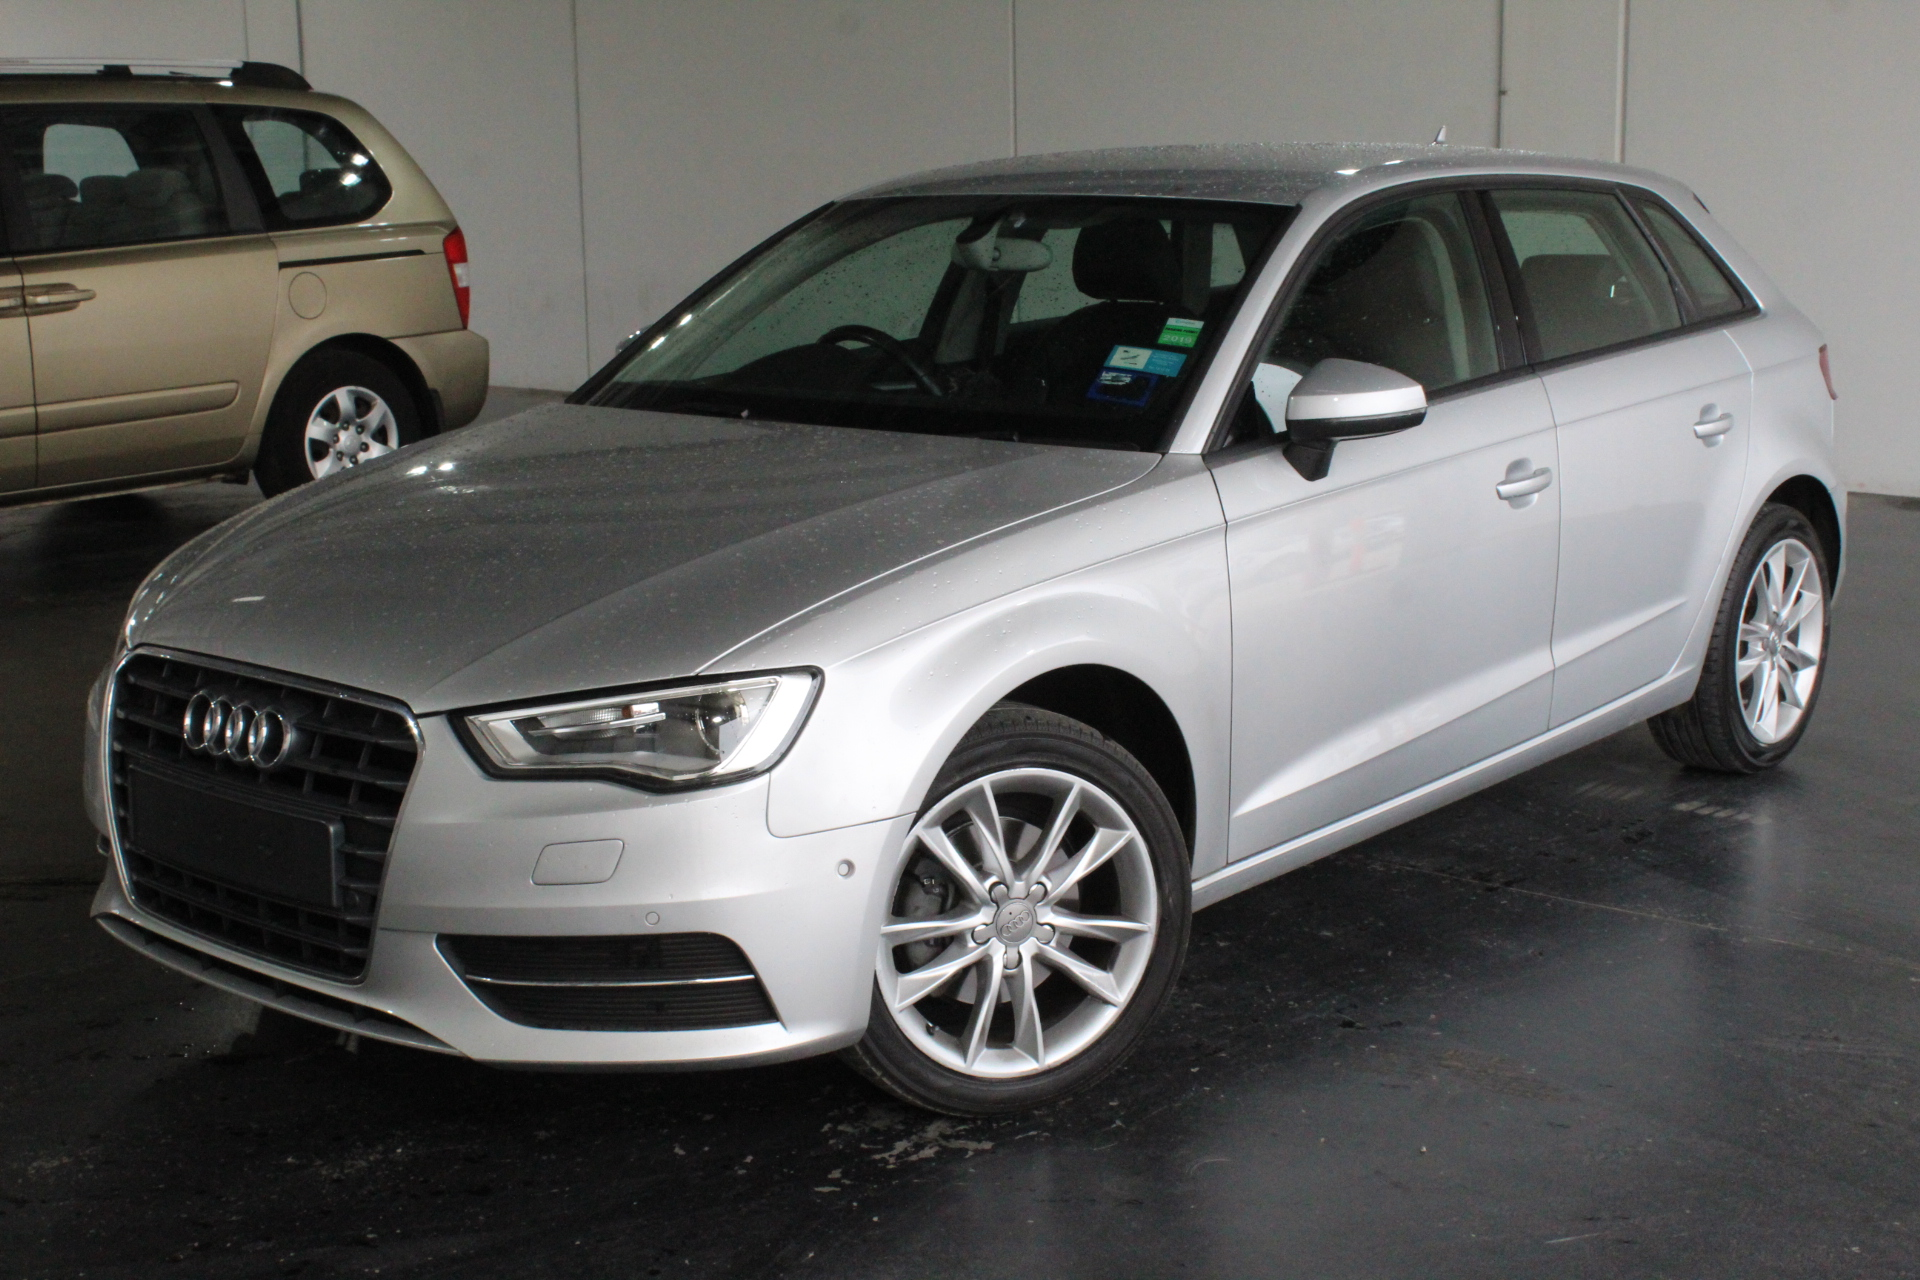 2013 Audi A3 1.6 TDI ATTRACTION 8V Turbo Diesel Automatic Hatchback